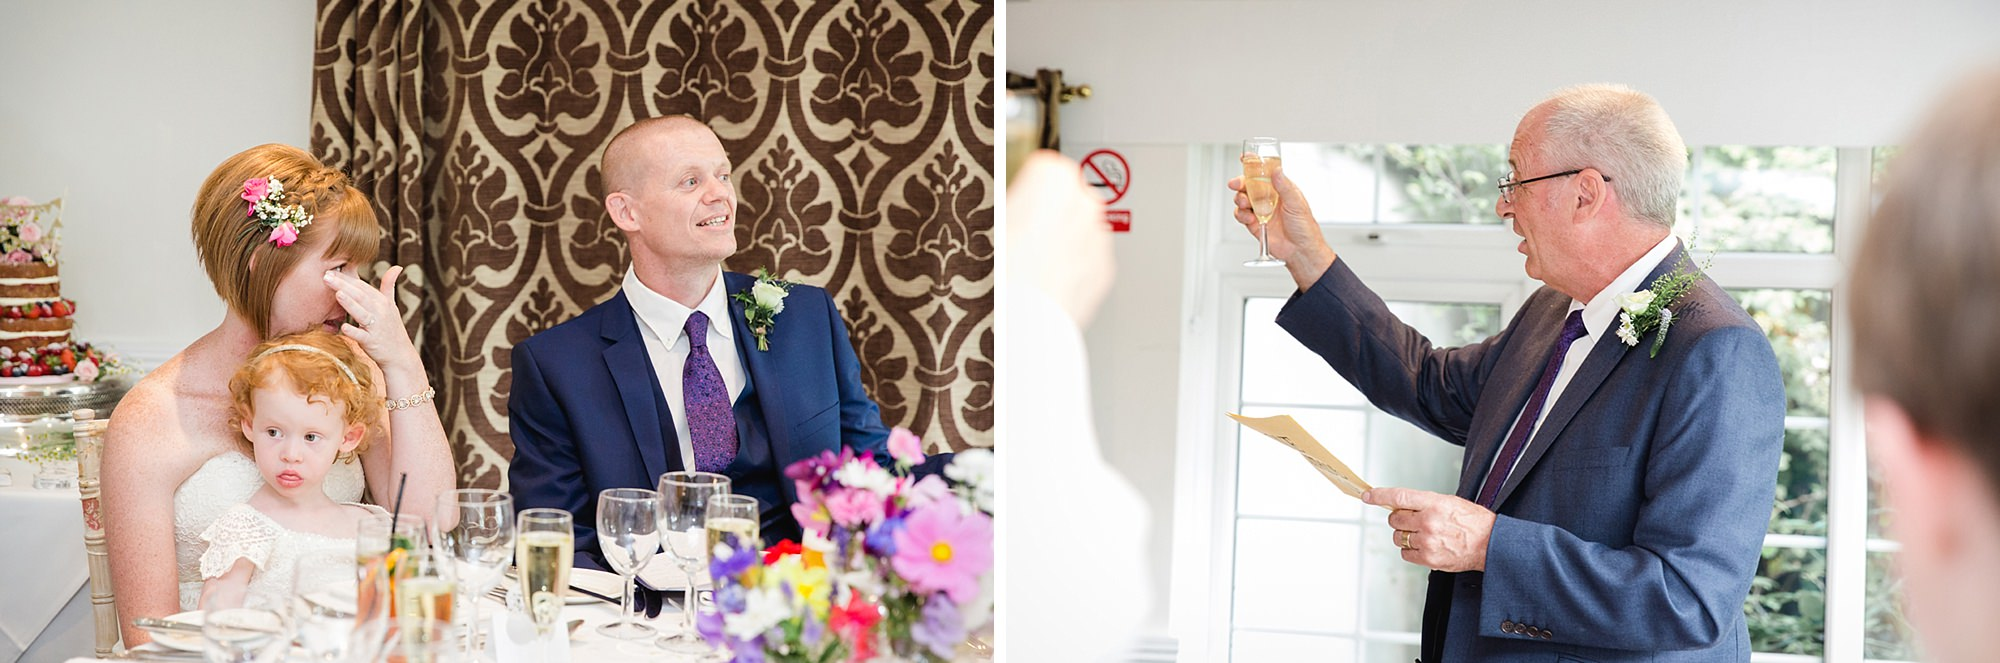 Mill House hotel wedding photography wedding toast